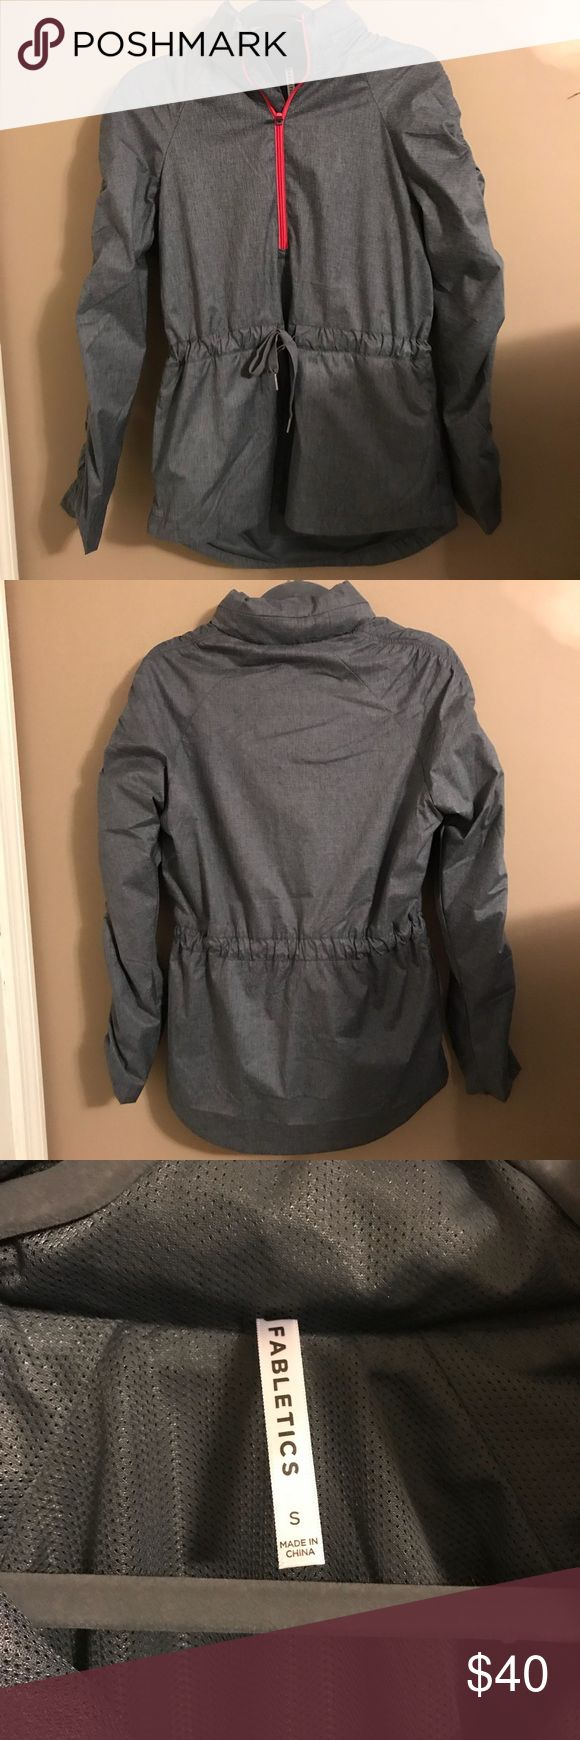 NWOT Fabletics Water Resistant Jacket NWOT Fabletics Water Resistant Jacket, size small. I love this jacket so much, unfortunately I took the tags off before trying it on and I wear a size medium. It has a hood that can be tucked in or left out and also reflective fabric (pictured with flash). The regular price on this jacket is $89.95 and for VIP members it's $59.95. I will accept offers on this! Fabletics Jackets & Coats